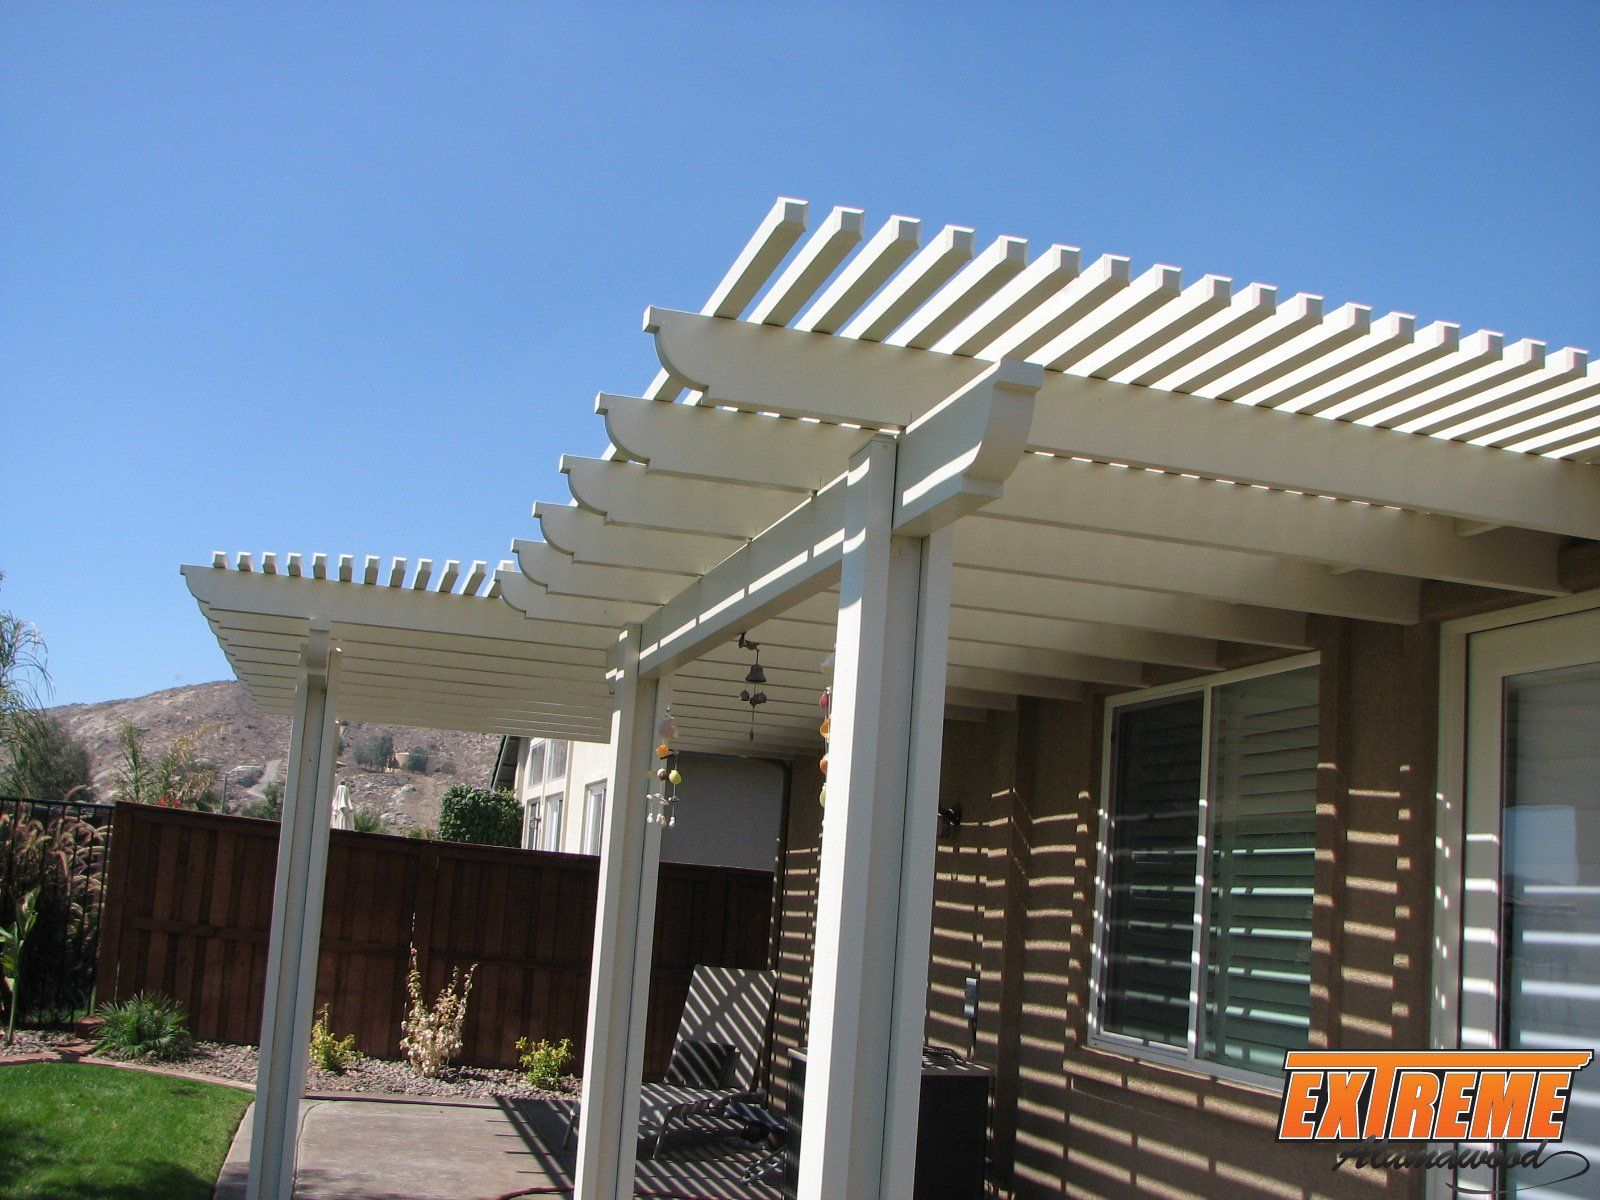 Wood lattice alumawood patio covers patios schmatios Patio products